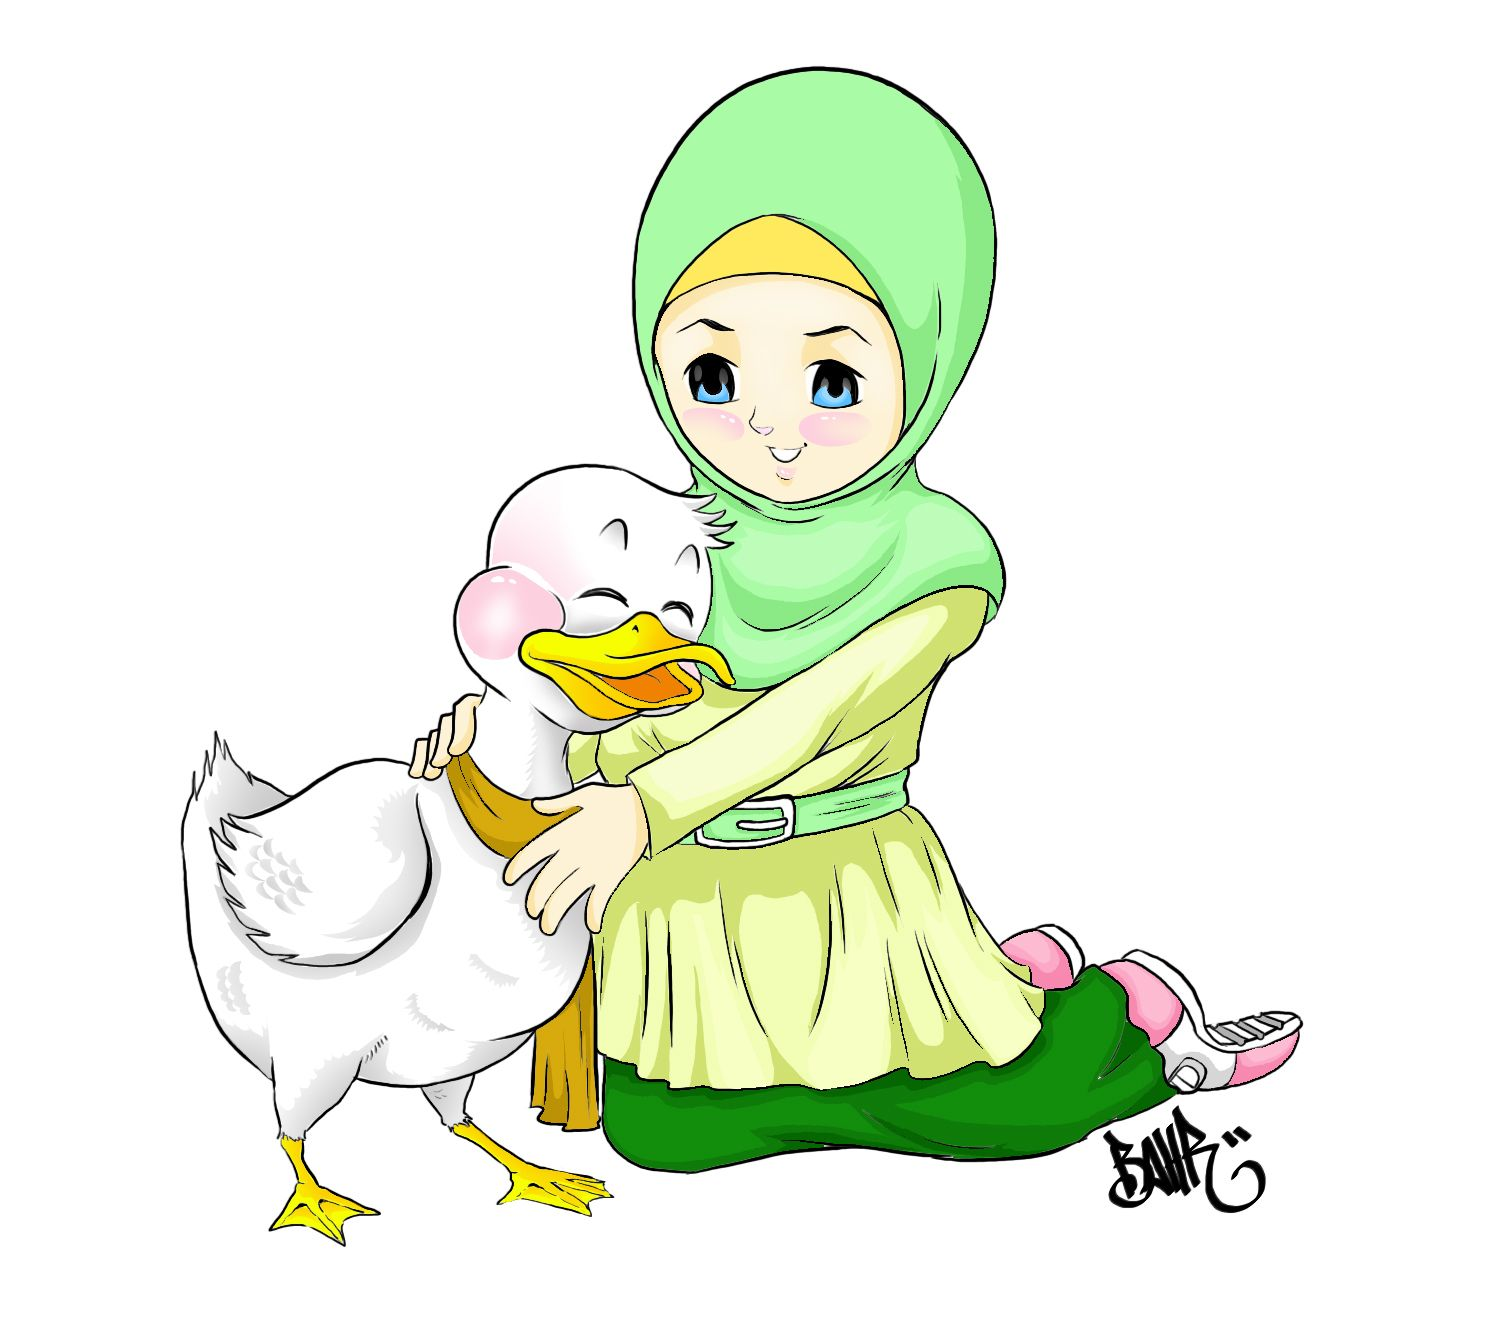 #Smol and Duck#  I Love this pict. Thanks for my friend who make it for me although I never meet you.